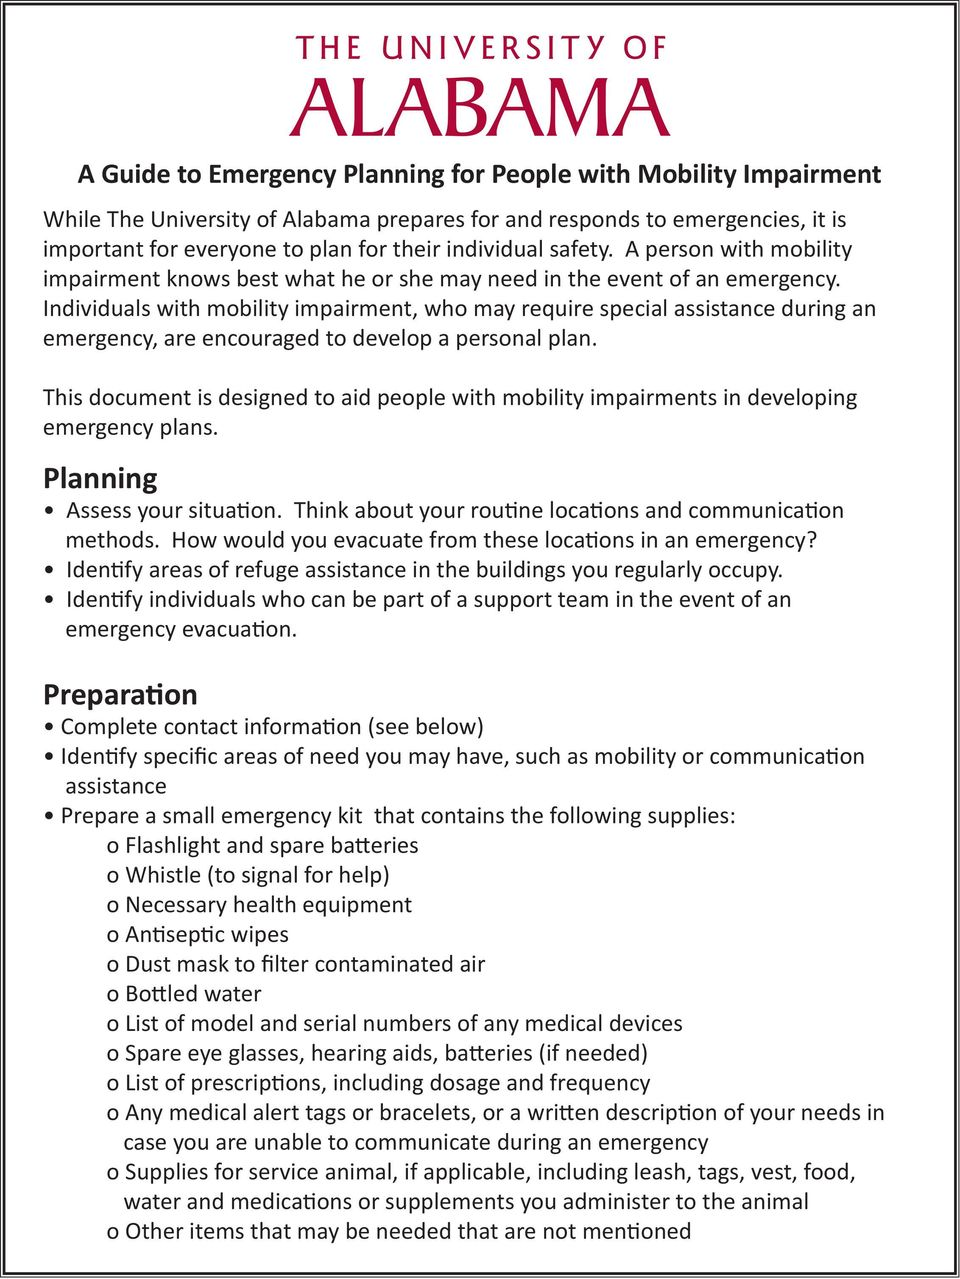 Individuals with mobility impairment, who may require special assistance during an emergency, are encouraged to develop a personal plan.